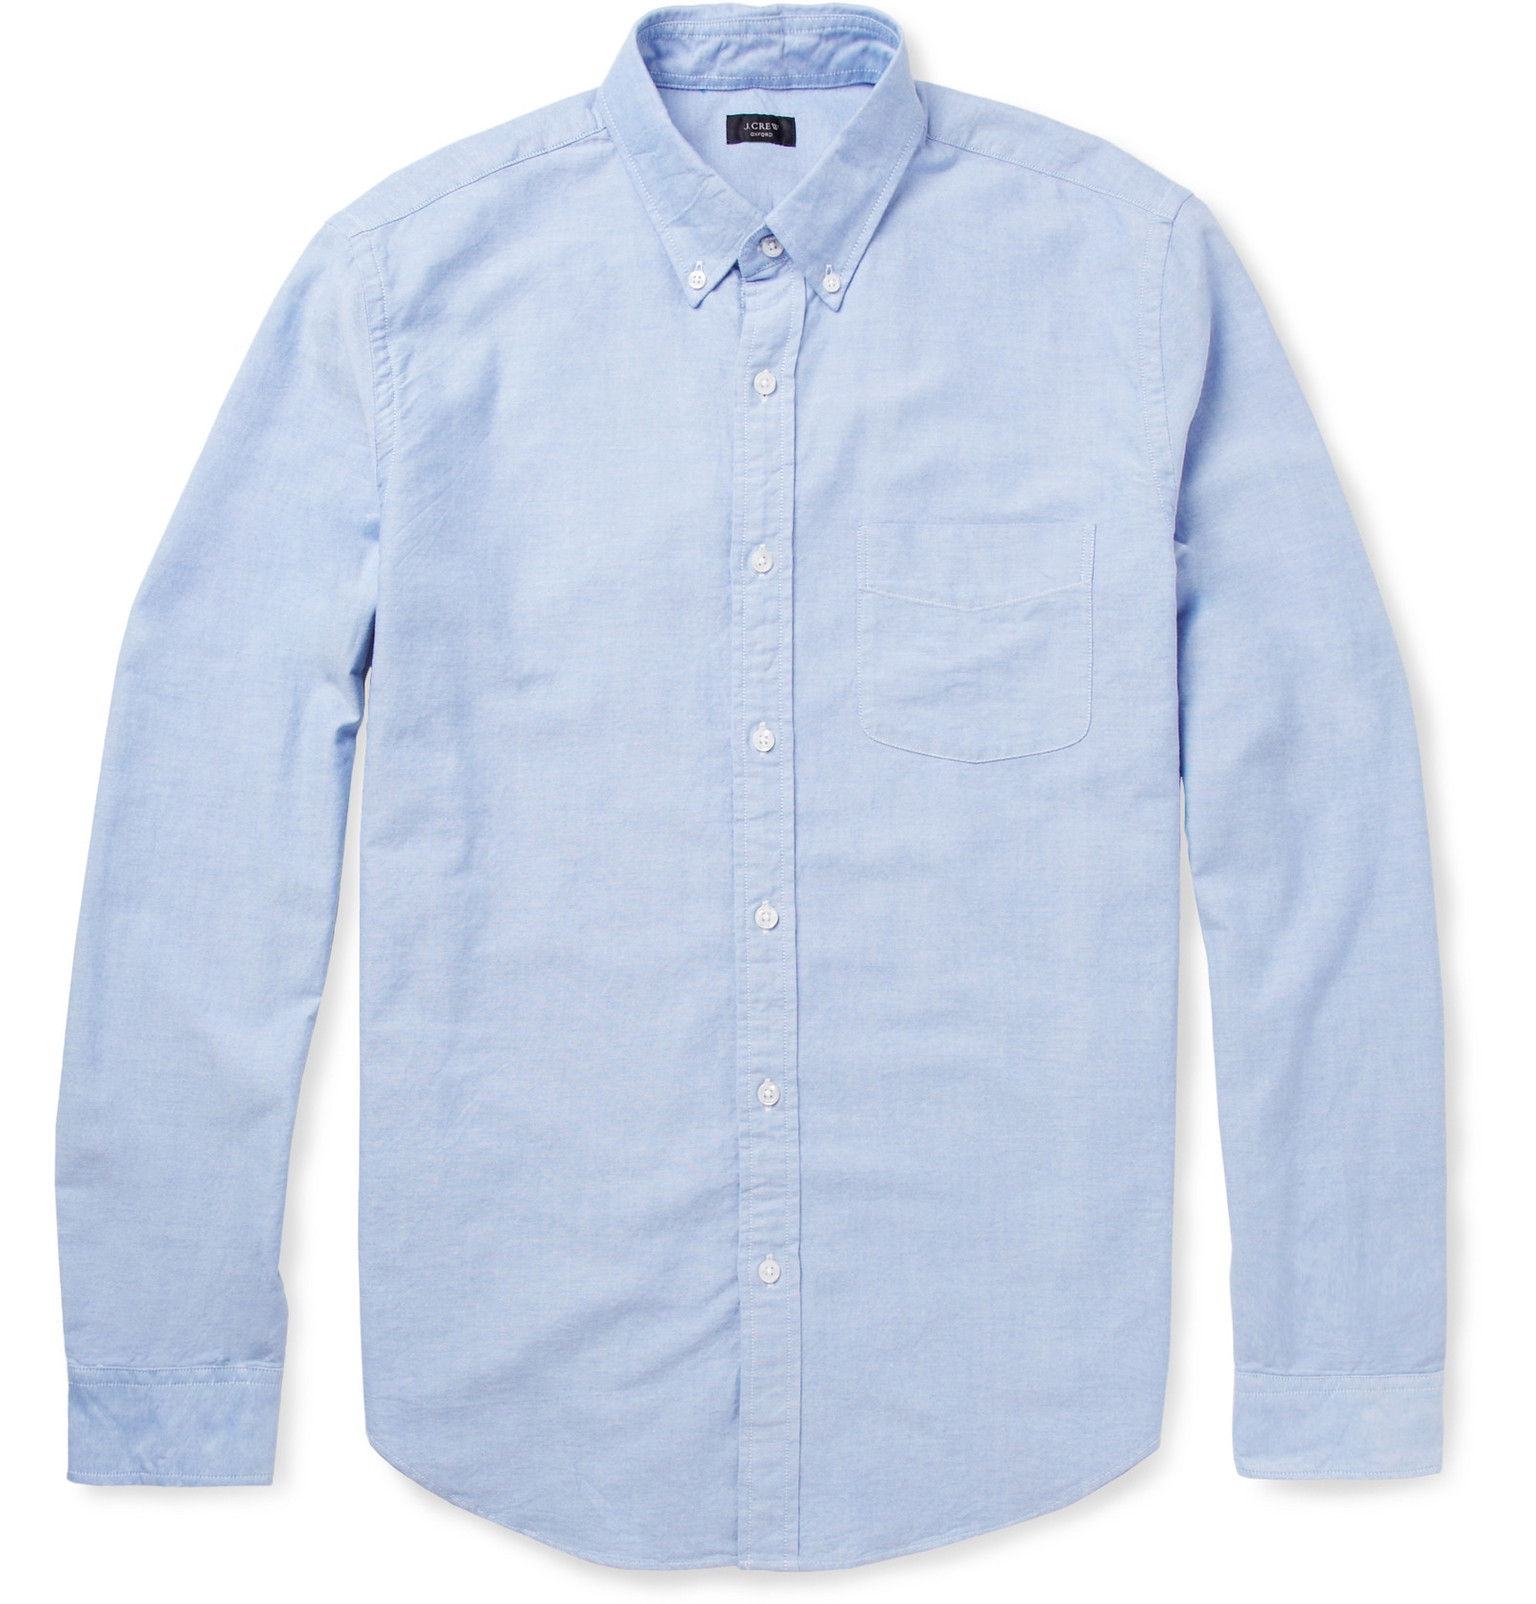 J.Crew - Button-Down Collar Cotton Oxford Shirt